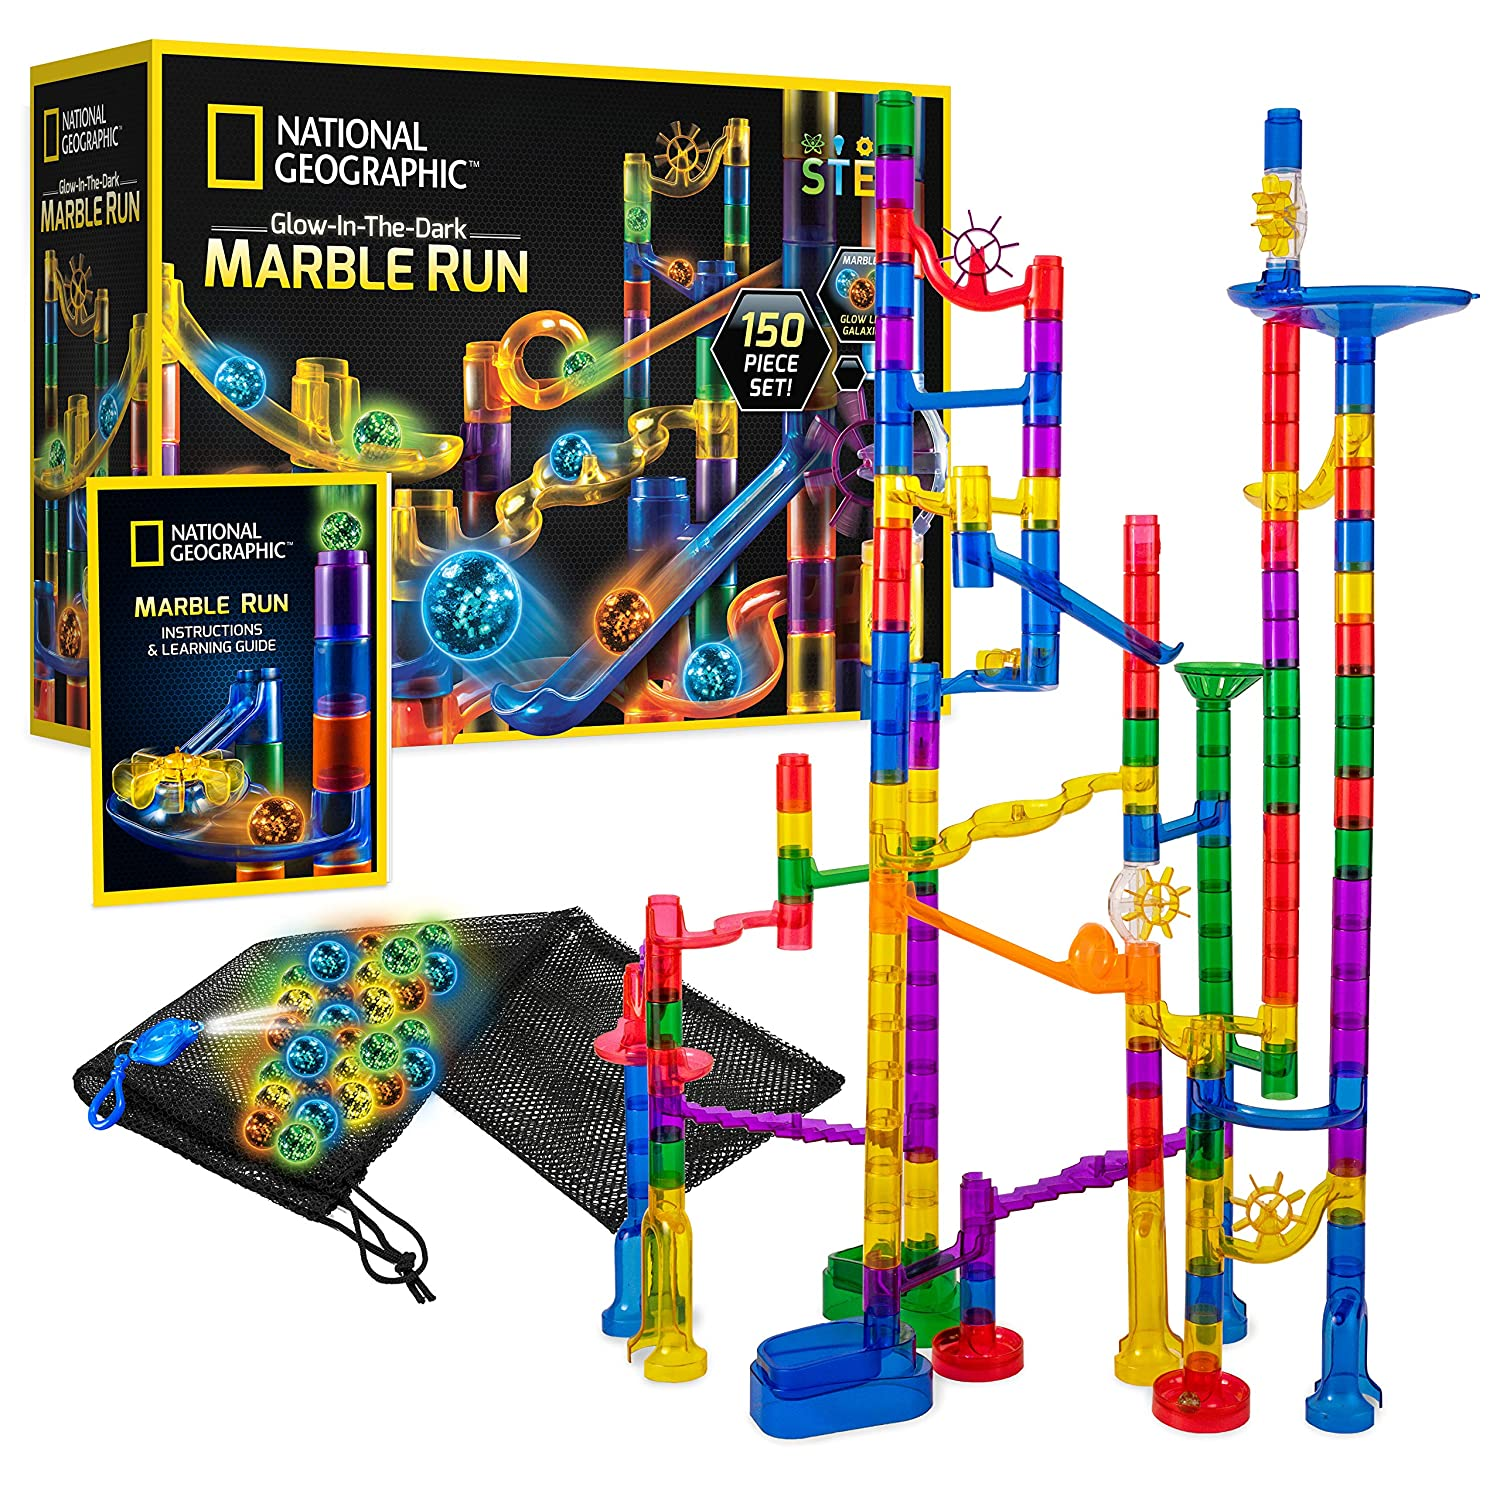 NATIONAL GEOGRAPHIC Marble Run Bundle /& UV Light Keychain Expansion Pack with 5 Glow-in-The-Dark Glass Marbles 20 Constructionpiece Great Creative Stem Toy for Girls /& Boys